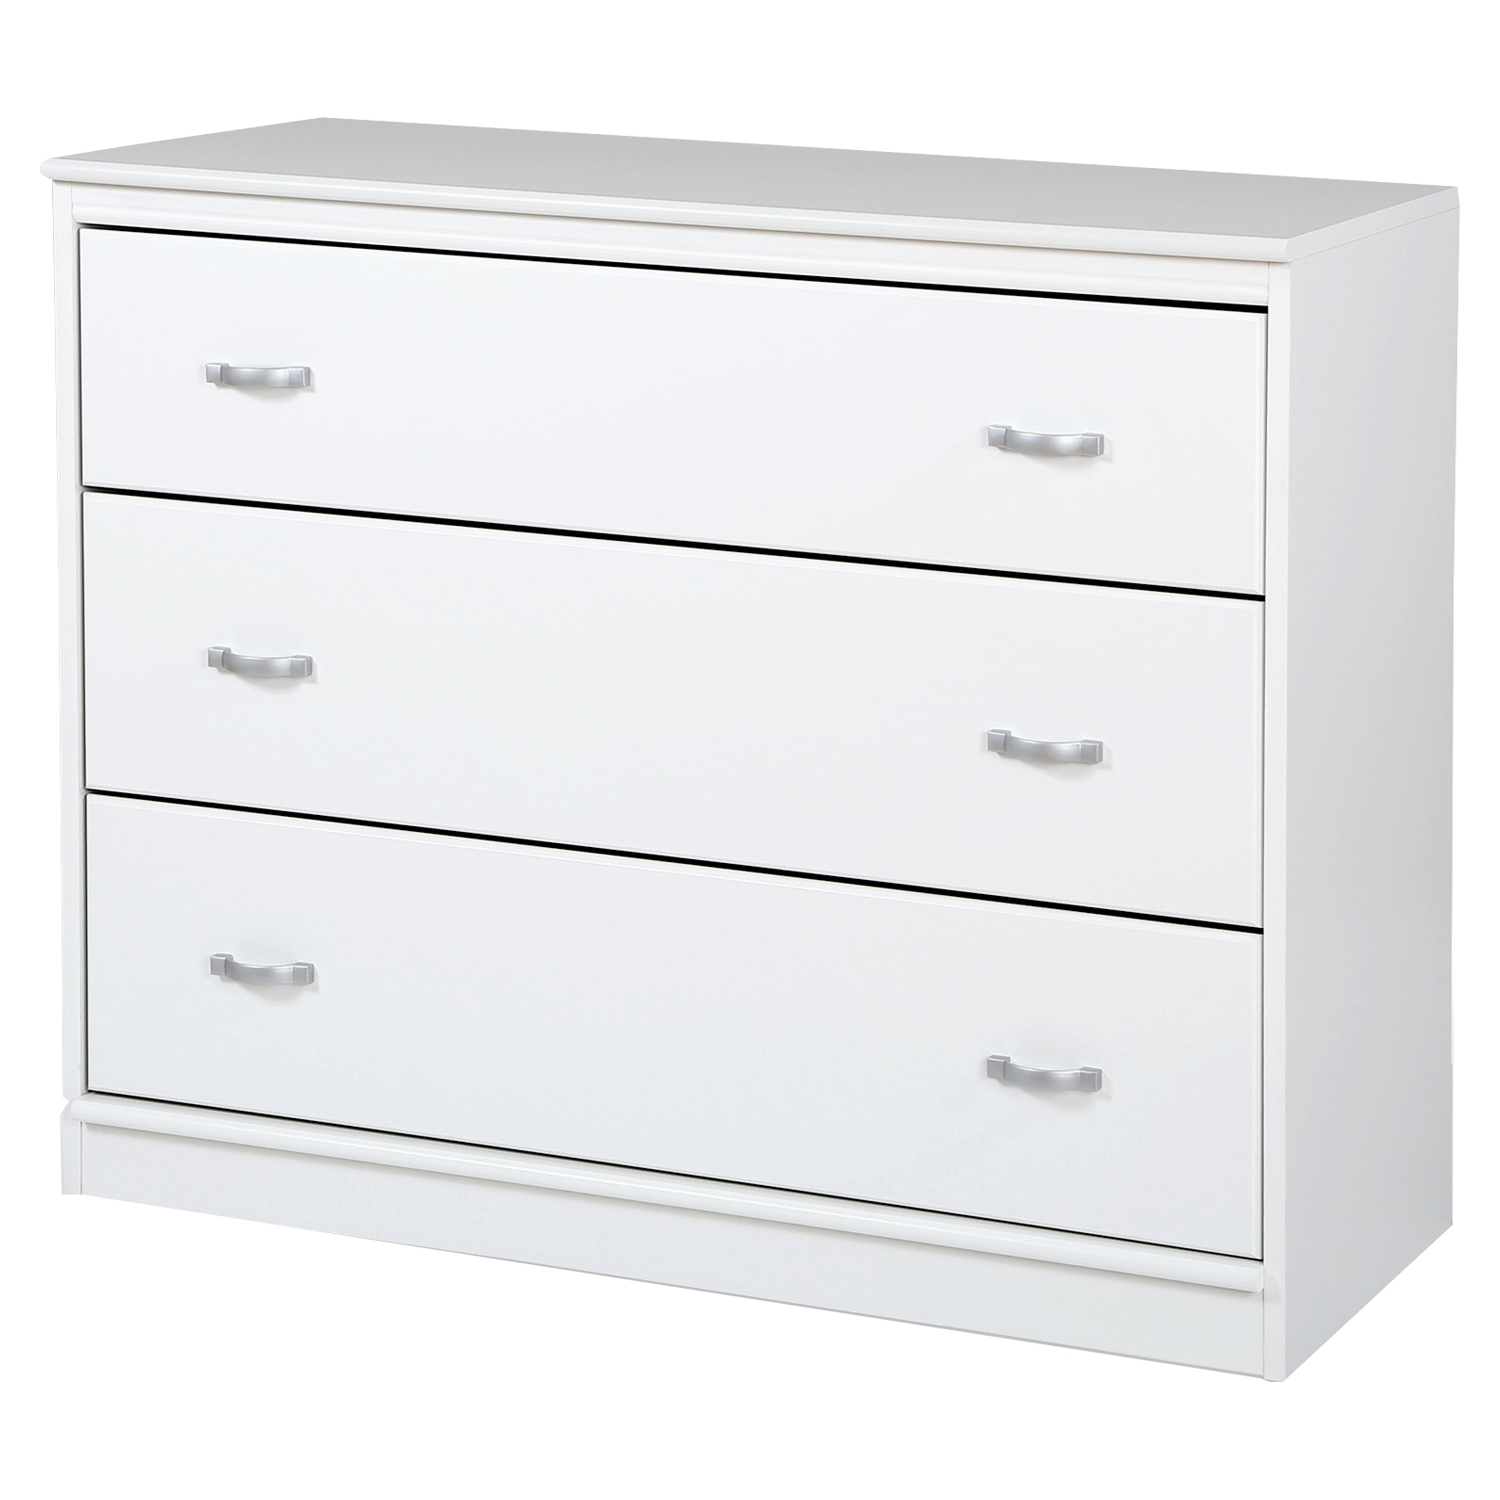 Mobby 3 Drawers Chest - Pure White - SS-3880033